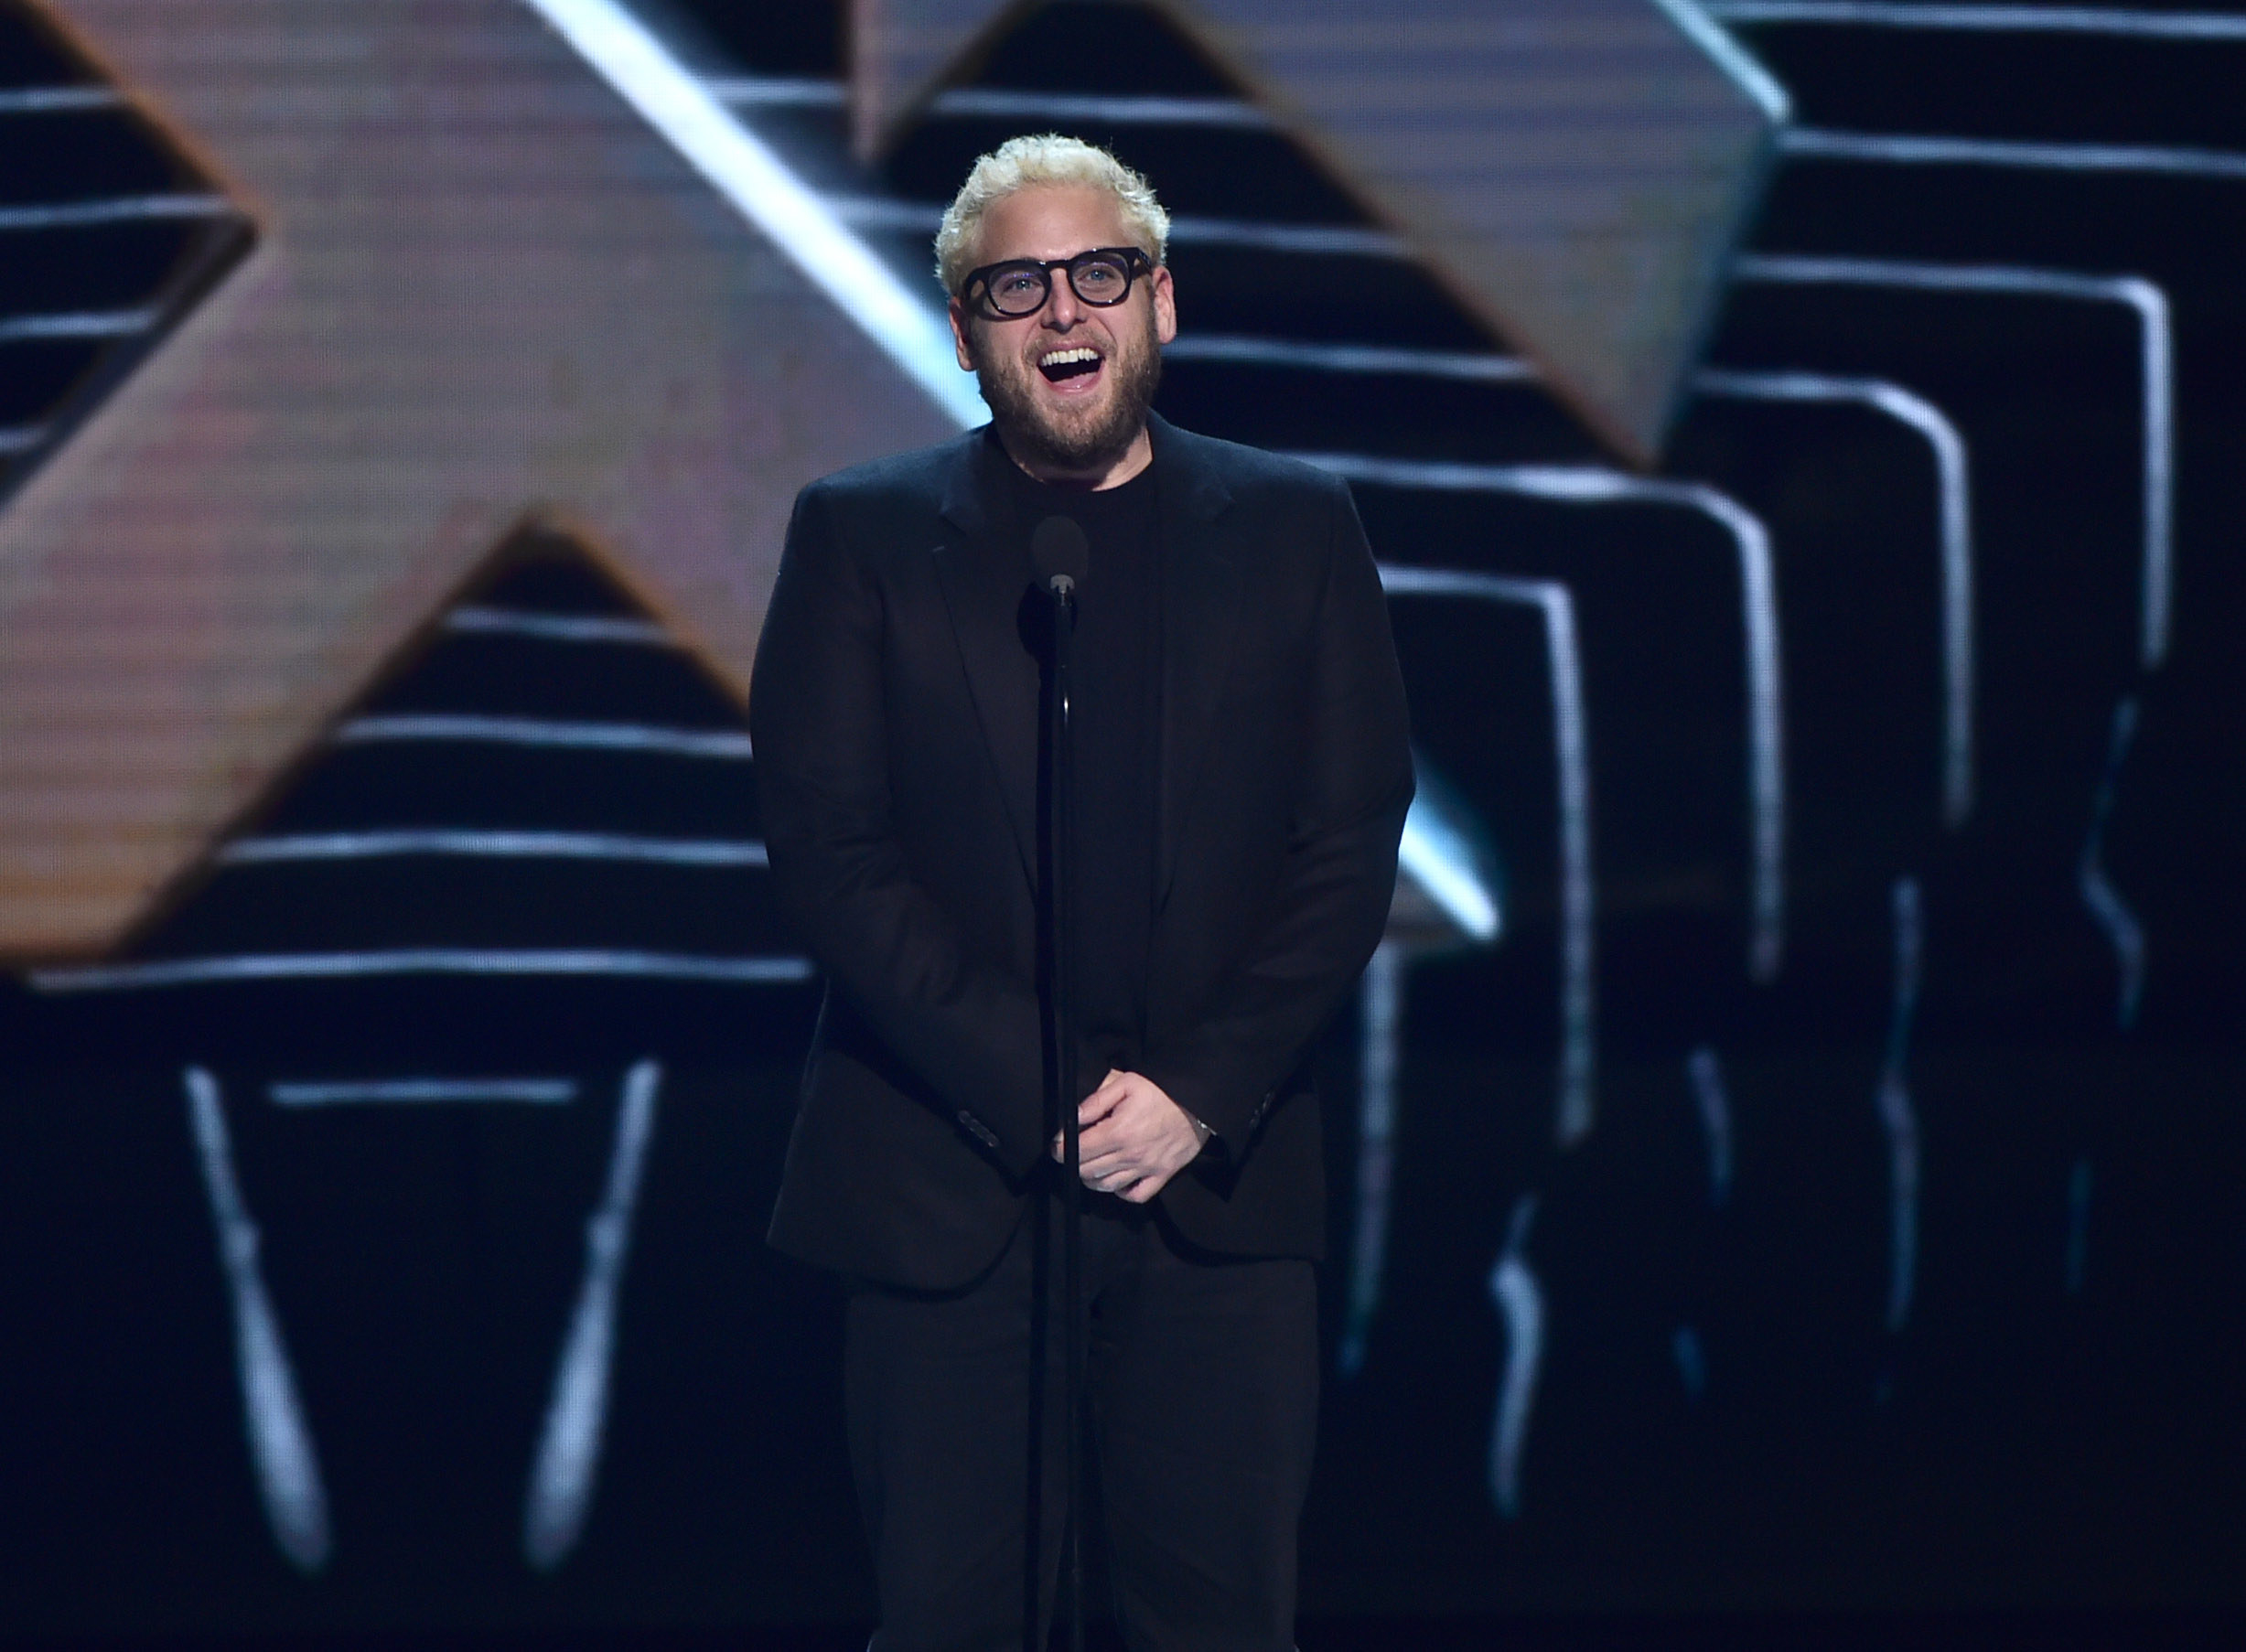 Jonah Hill attends the 2018 Game Awards at Microsoft Theater on December 06, 2018, in Los Angeles, California